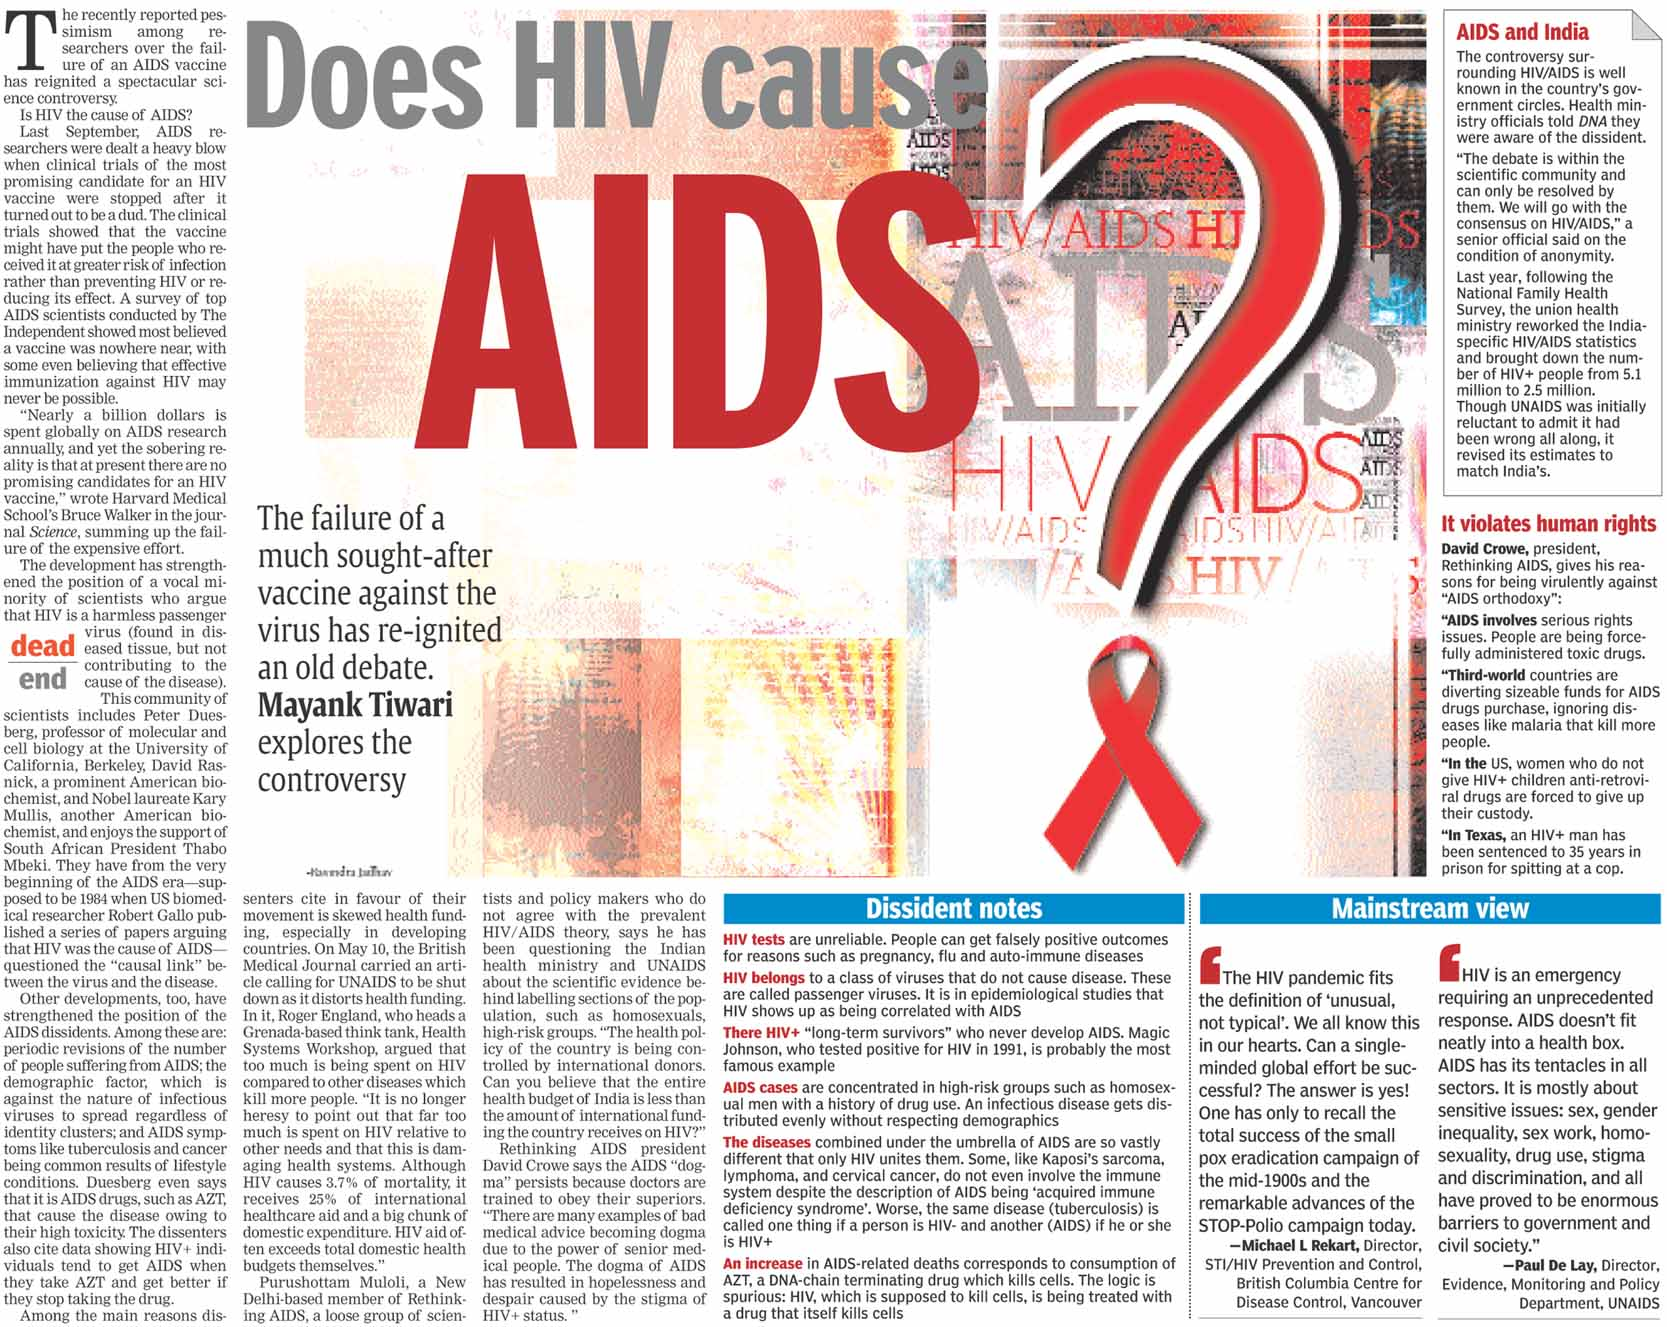 aids in women essay